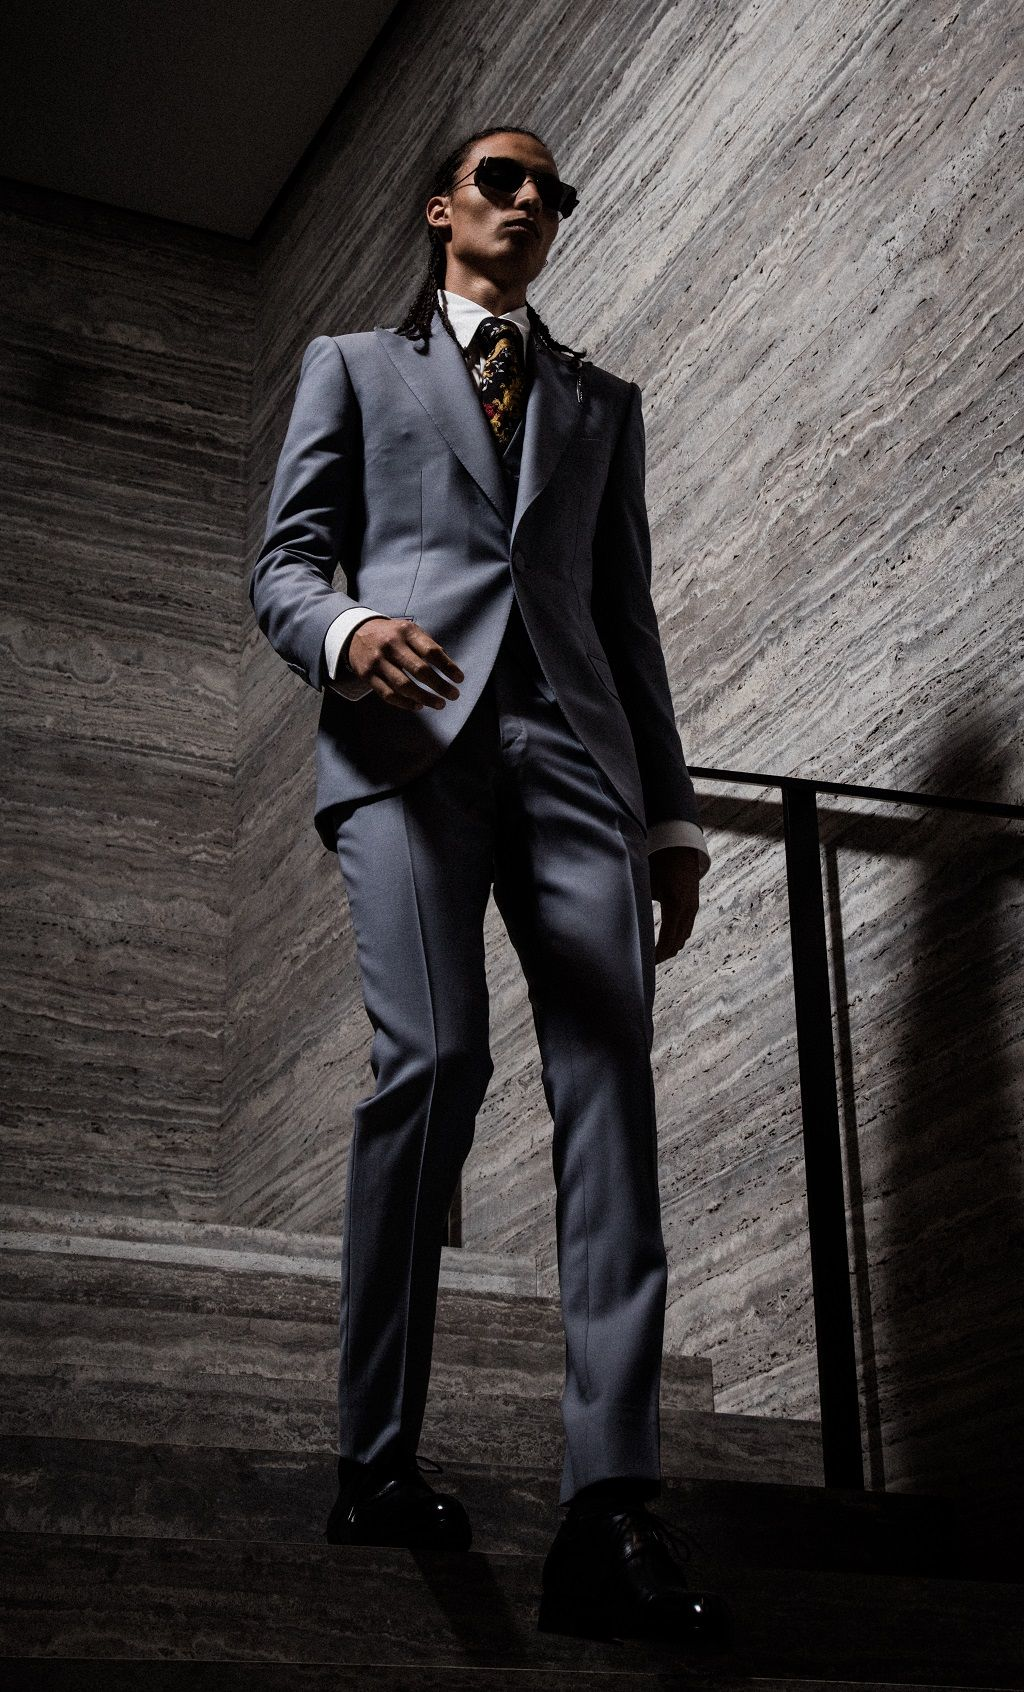 Forum on this topic: Meet Justin O'Shea – Brioni's New Creative , meet-justin-oshea-brionis-new-creative/